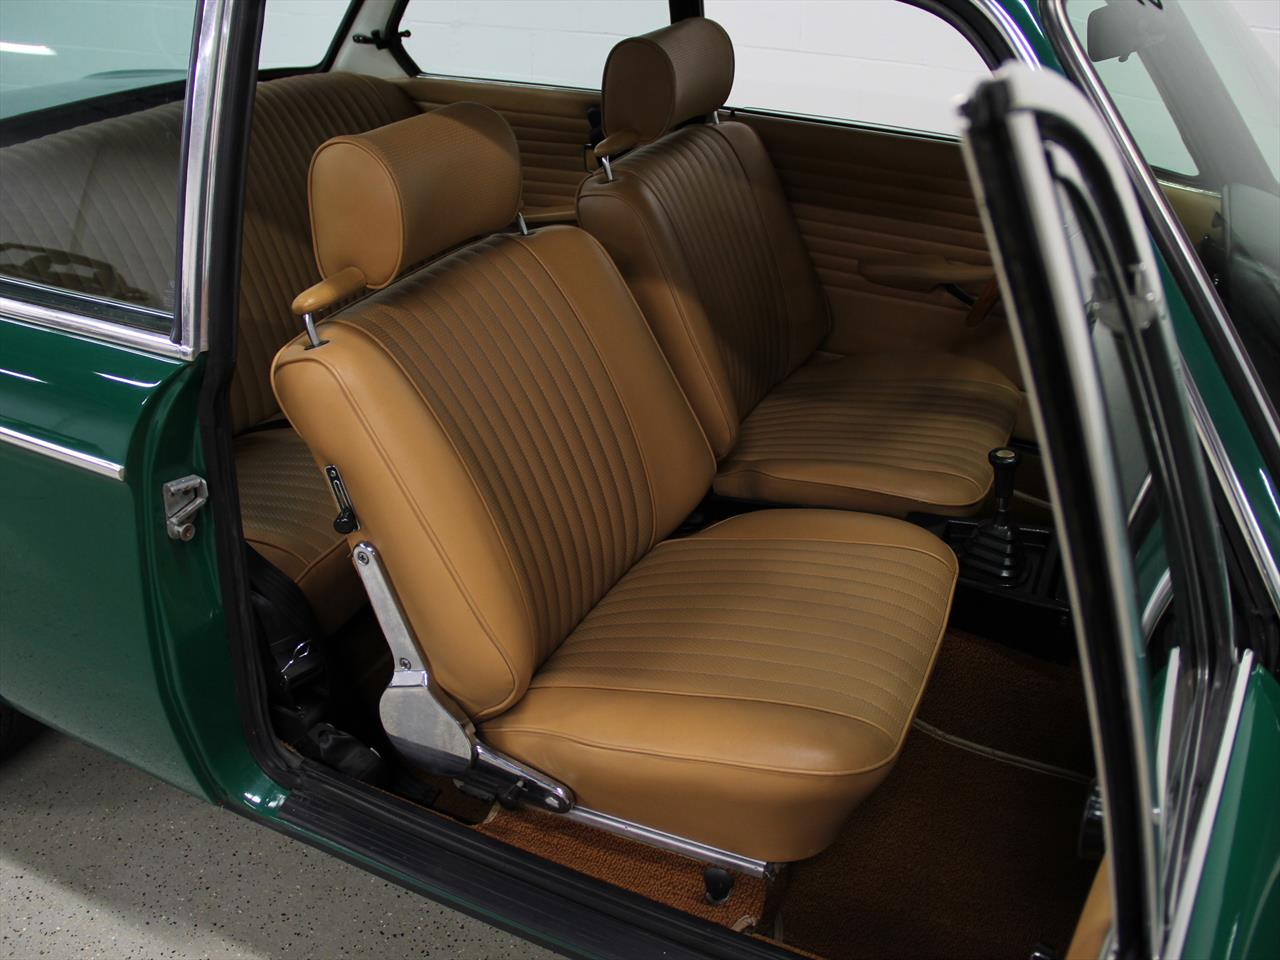 purchase used 1969 bmw 2002 green tan great driver quality paint interior look great in. Black Bedroom Furniture Sets. Home Design Ideas